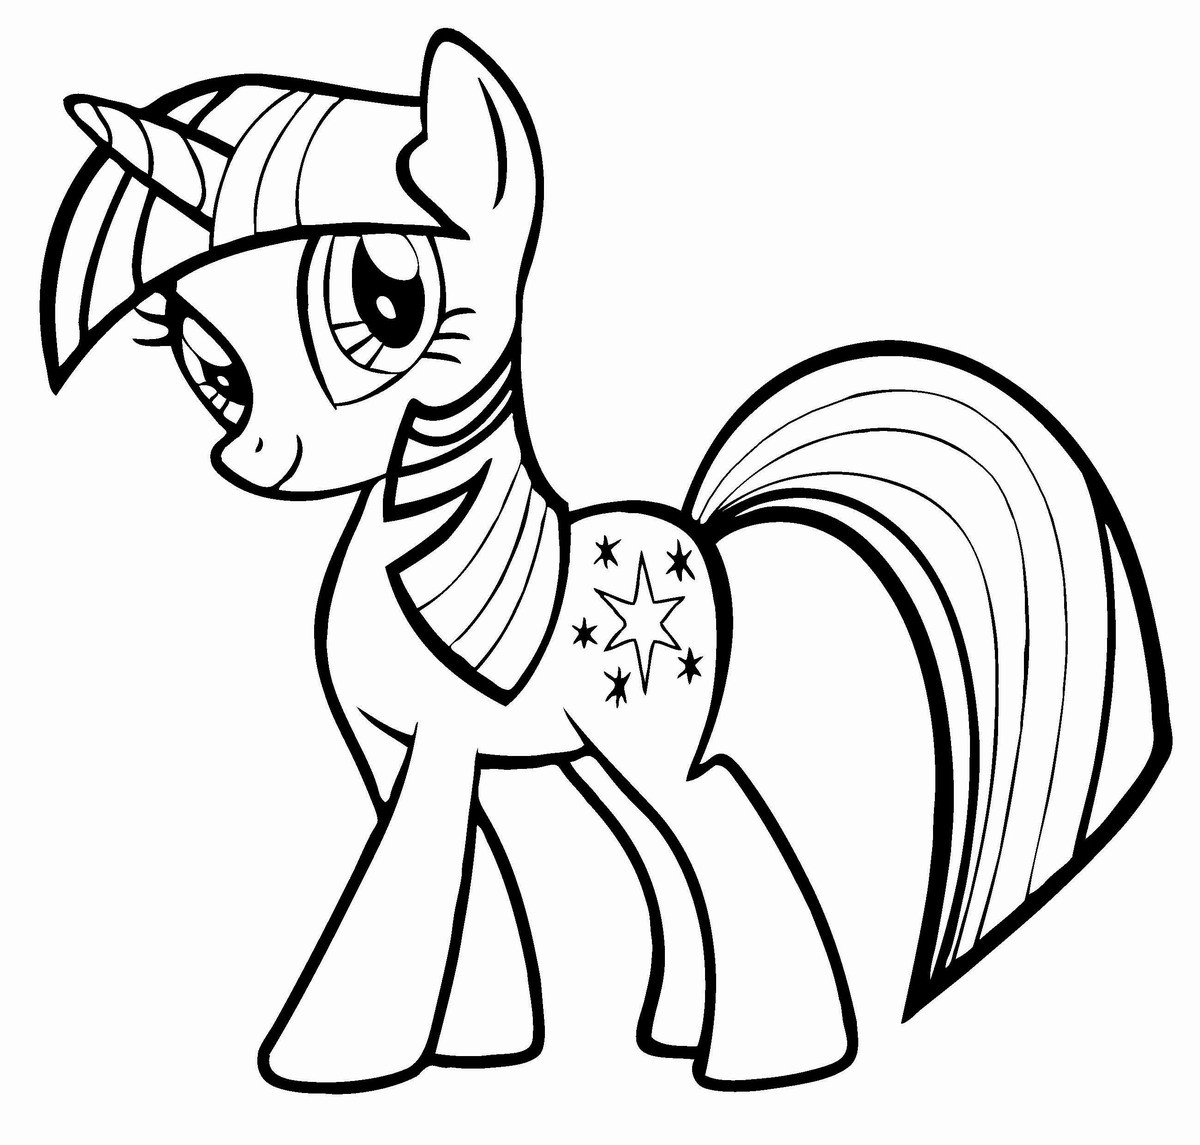 my-little-pony-pictures-to-color-of-my-little-pony-pictures-to-color My Little Pony Pictures to Color Cartoon